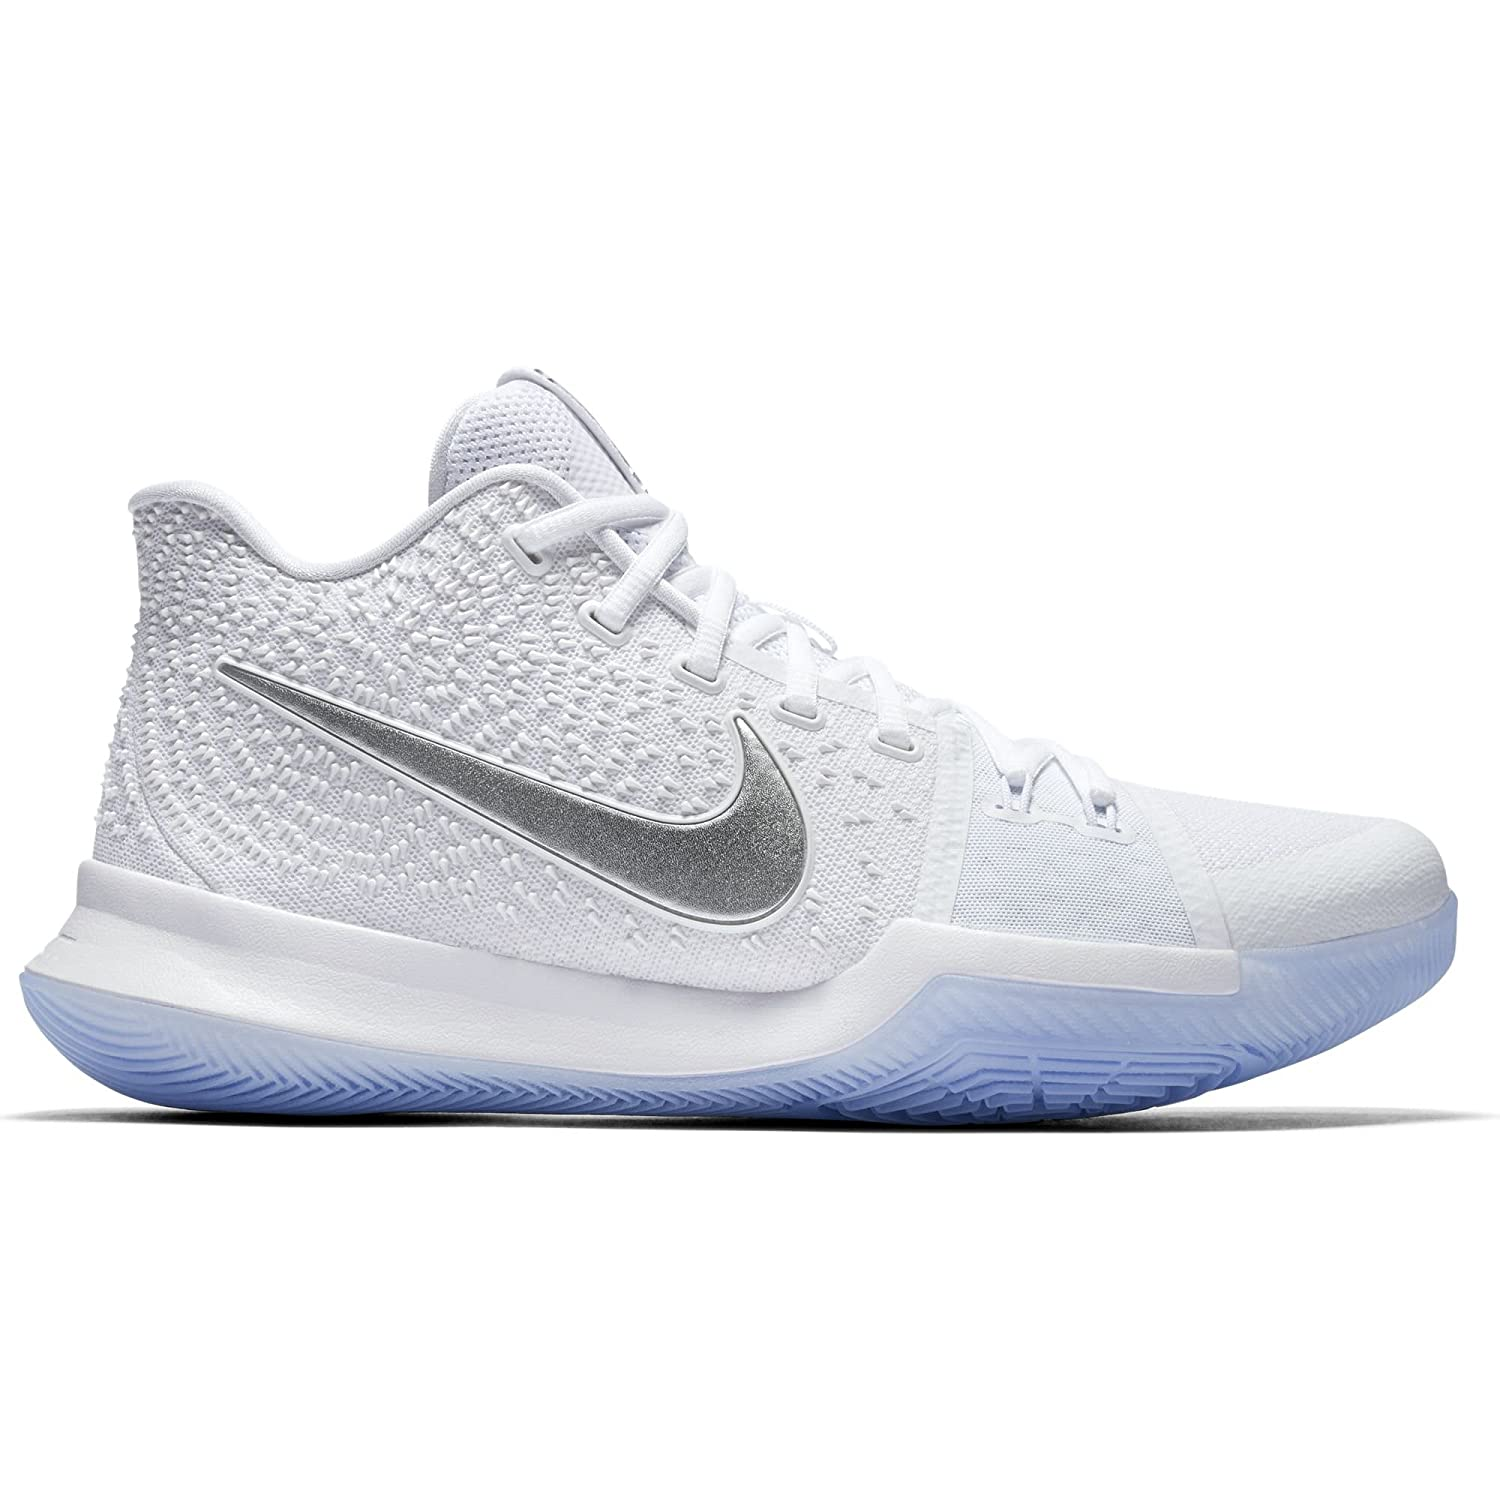 san francisco 3bef6 10309 ... NIKE NIKE NIKE Boys Kyrie 3 Colorblock Mids Basketball Shoes B00CCO3C9S  4Y White 2956b4 ...